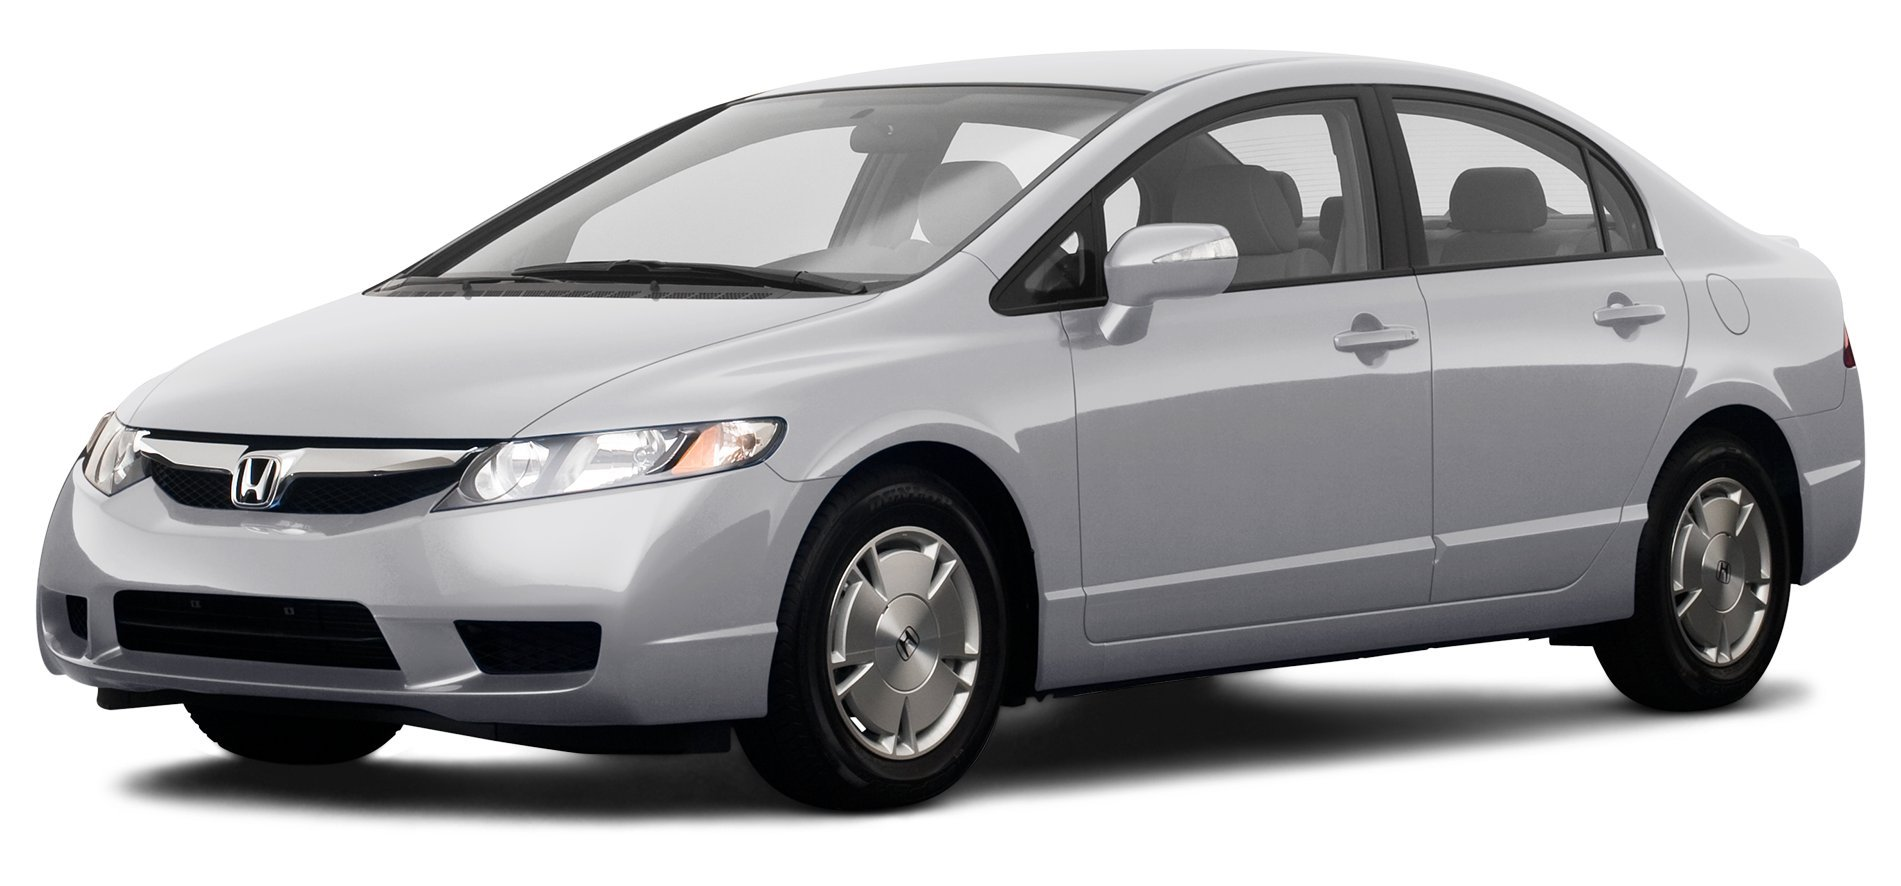 2009 Honda Civic, 4 Door Sedan ...